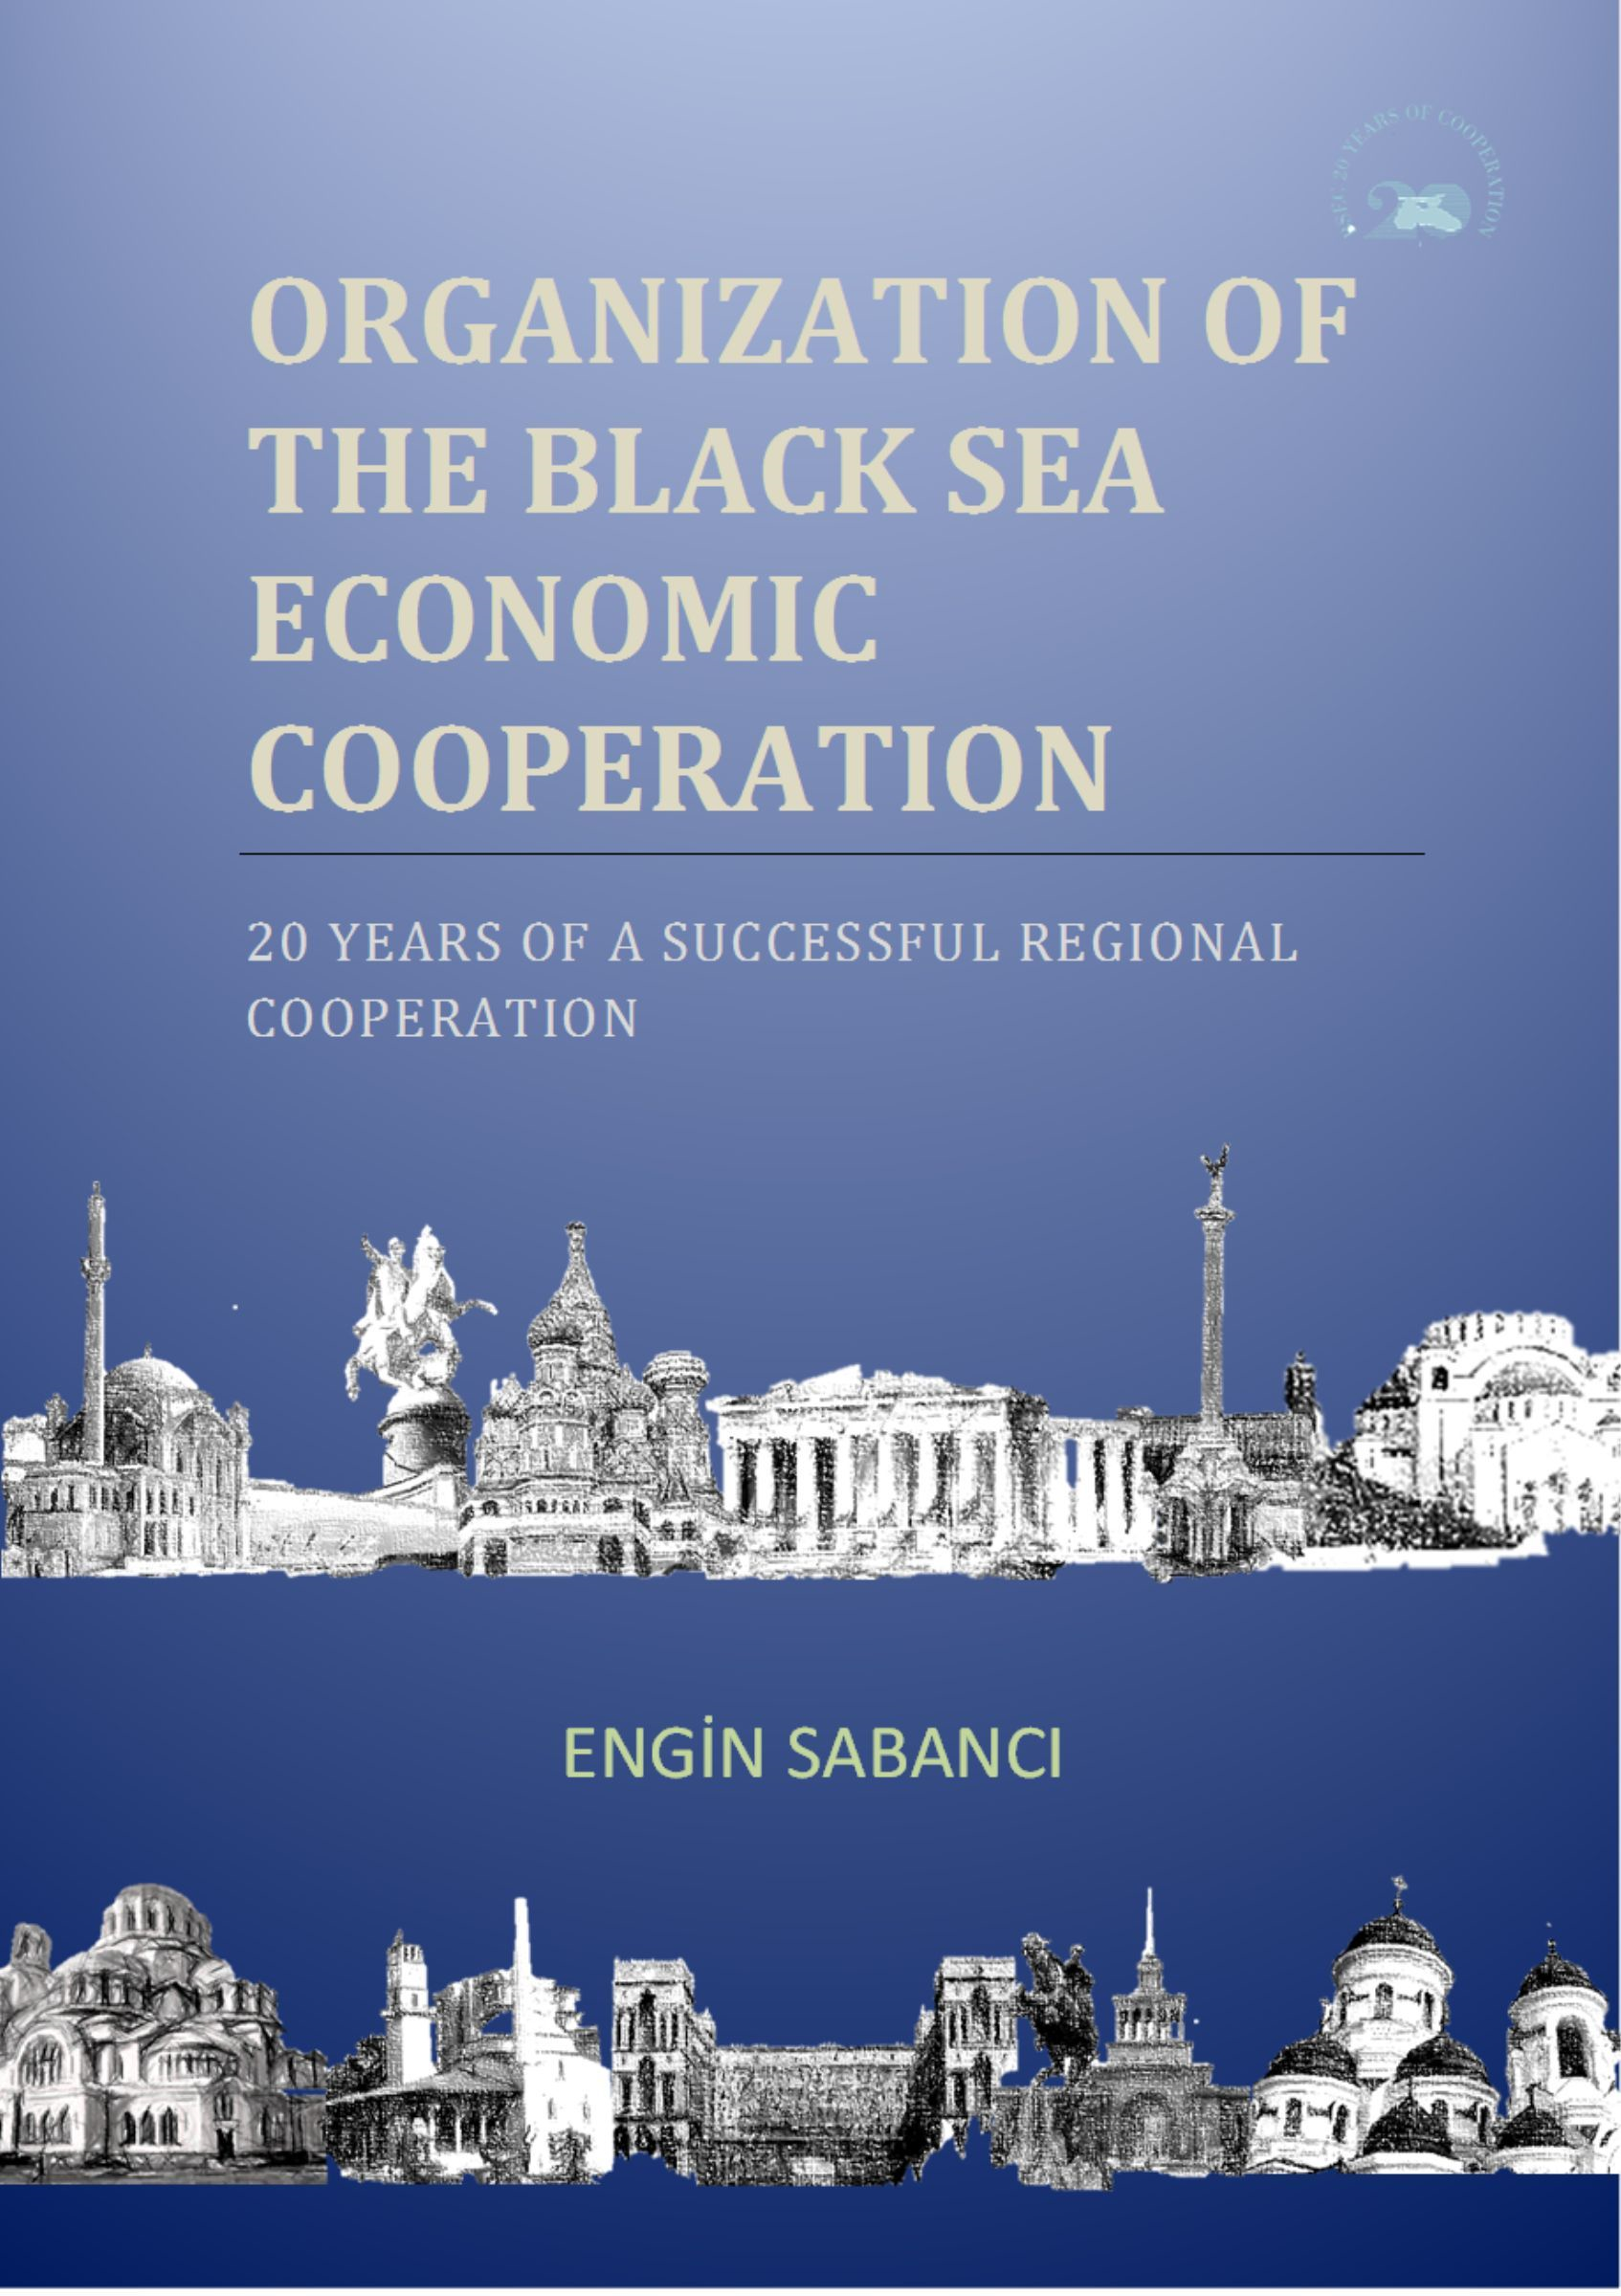 Organization of the Black Sea Economic Cooperation-20 Years of a Successful Regional Cooperation